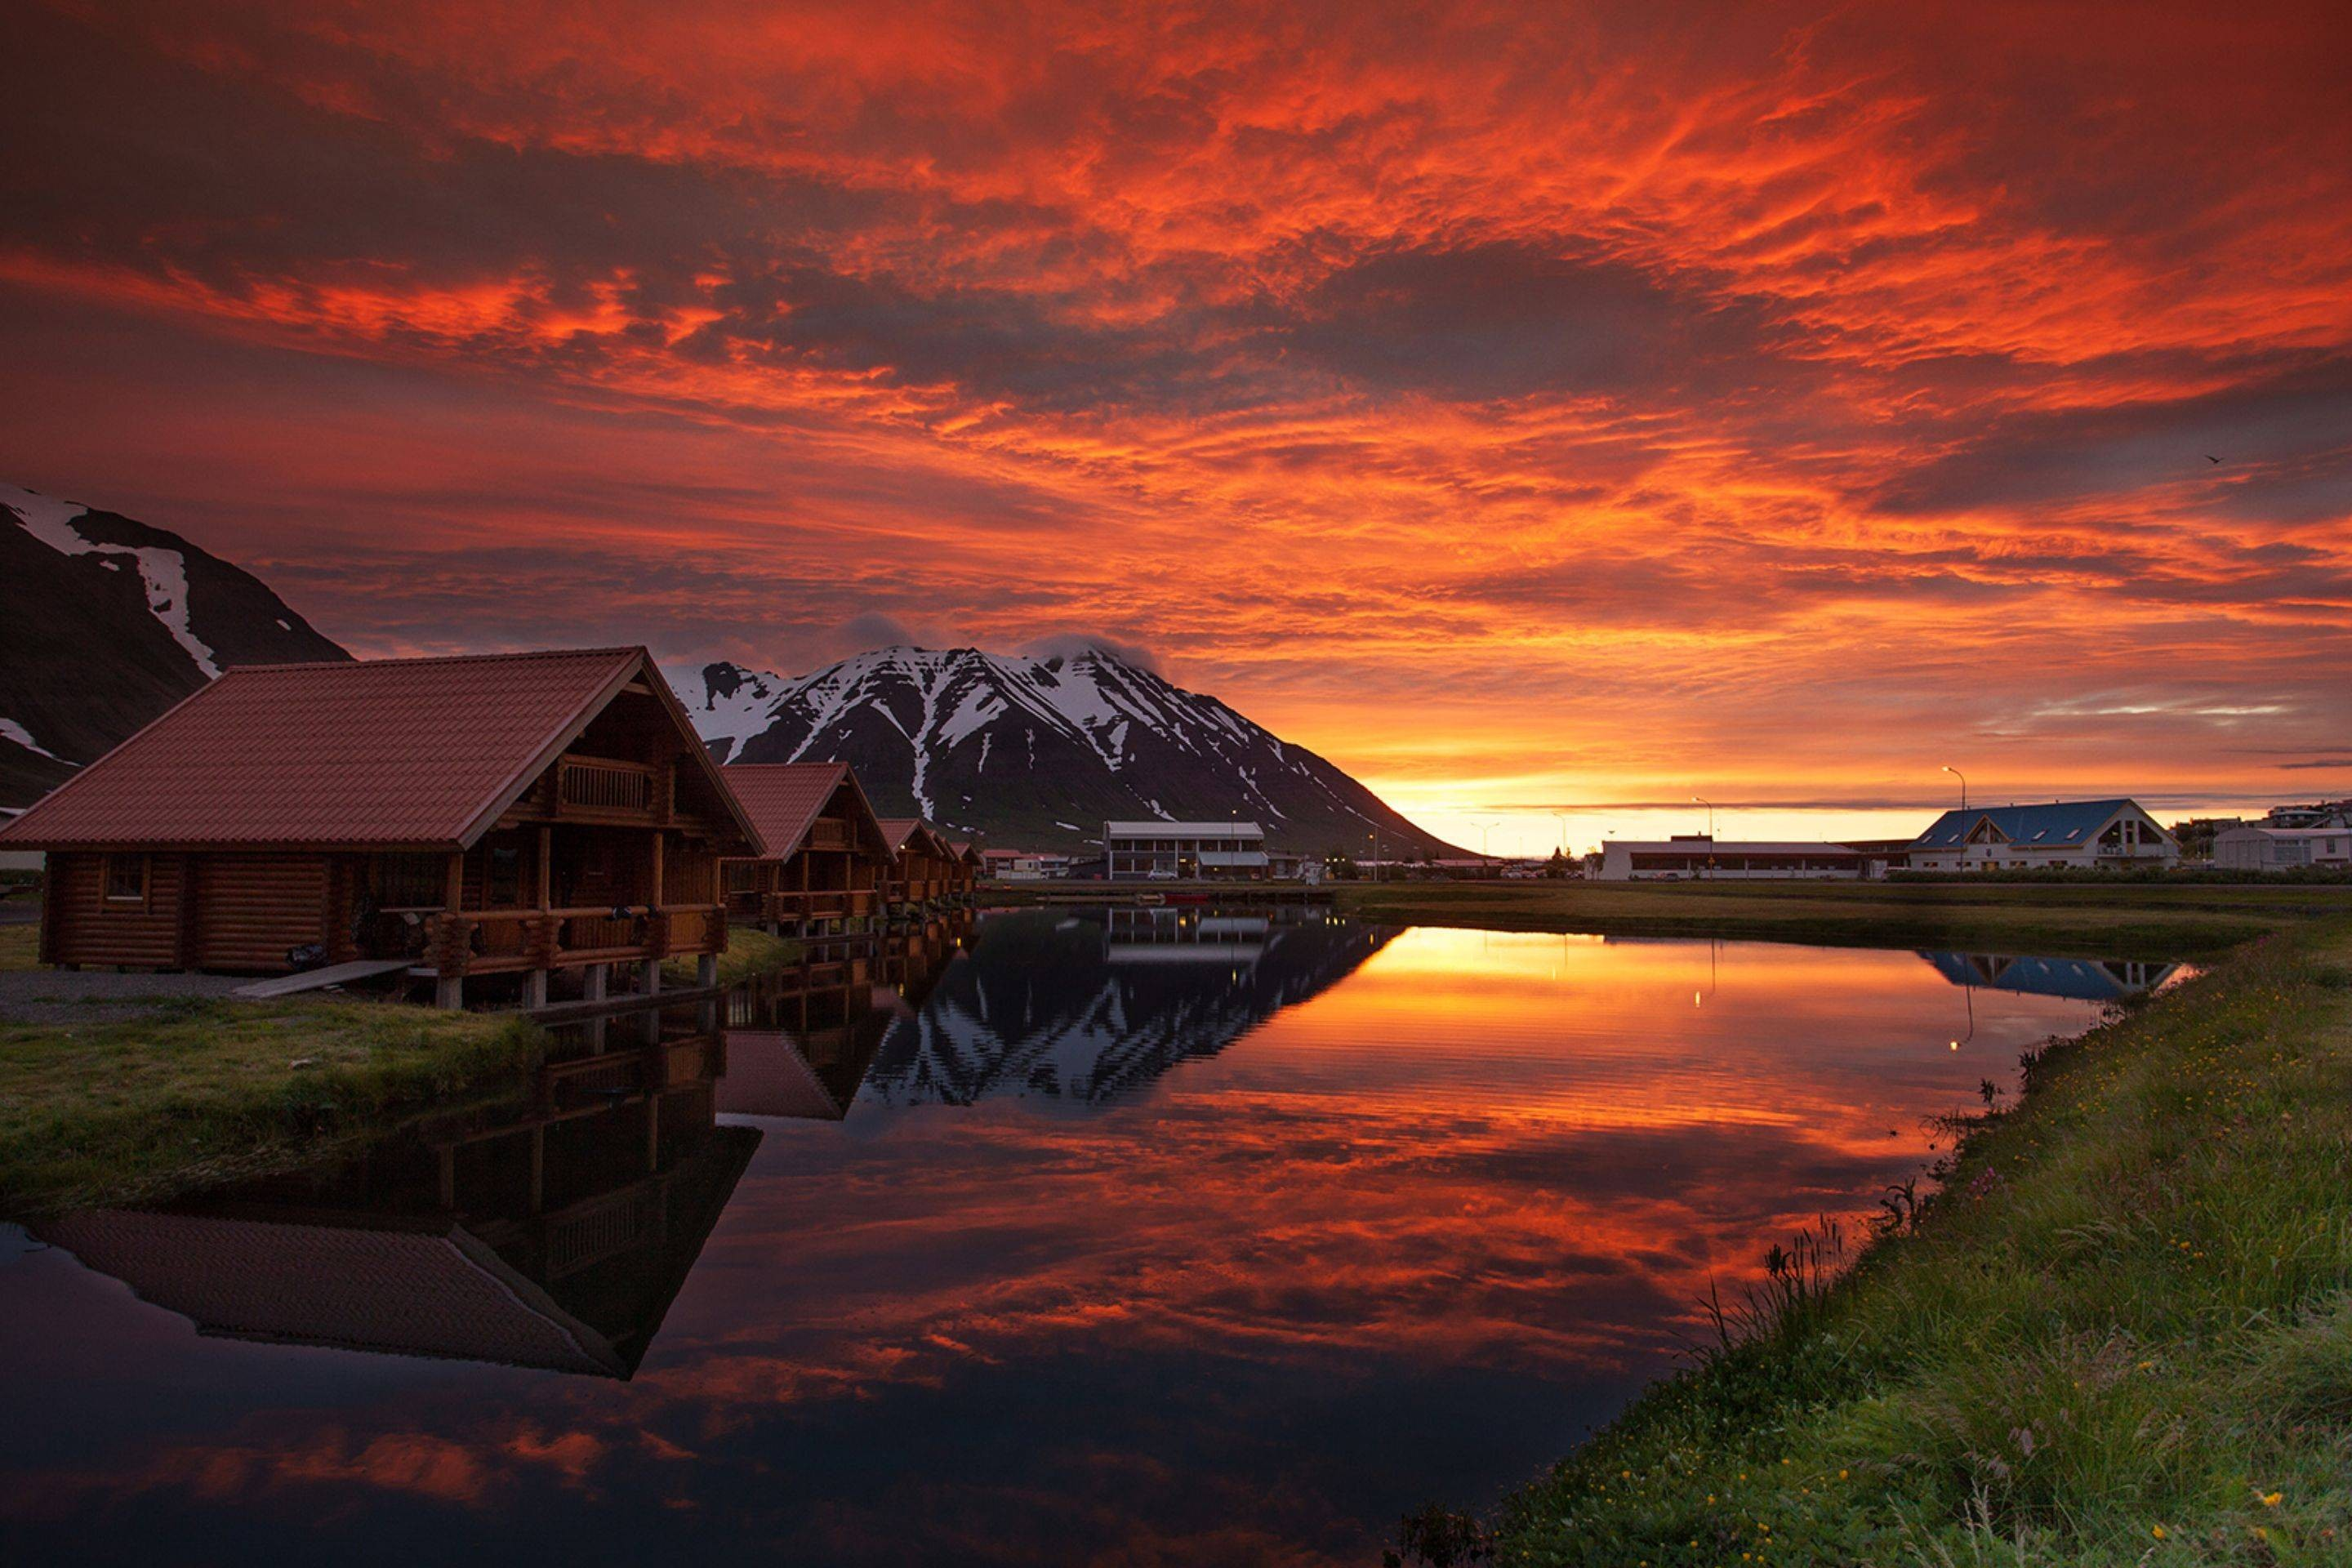 Iceland wallpaper download free awesome high resolution - Iceland iphone wallpaper ...